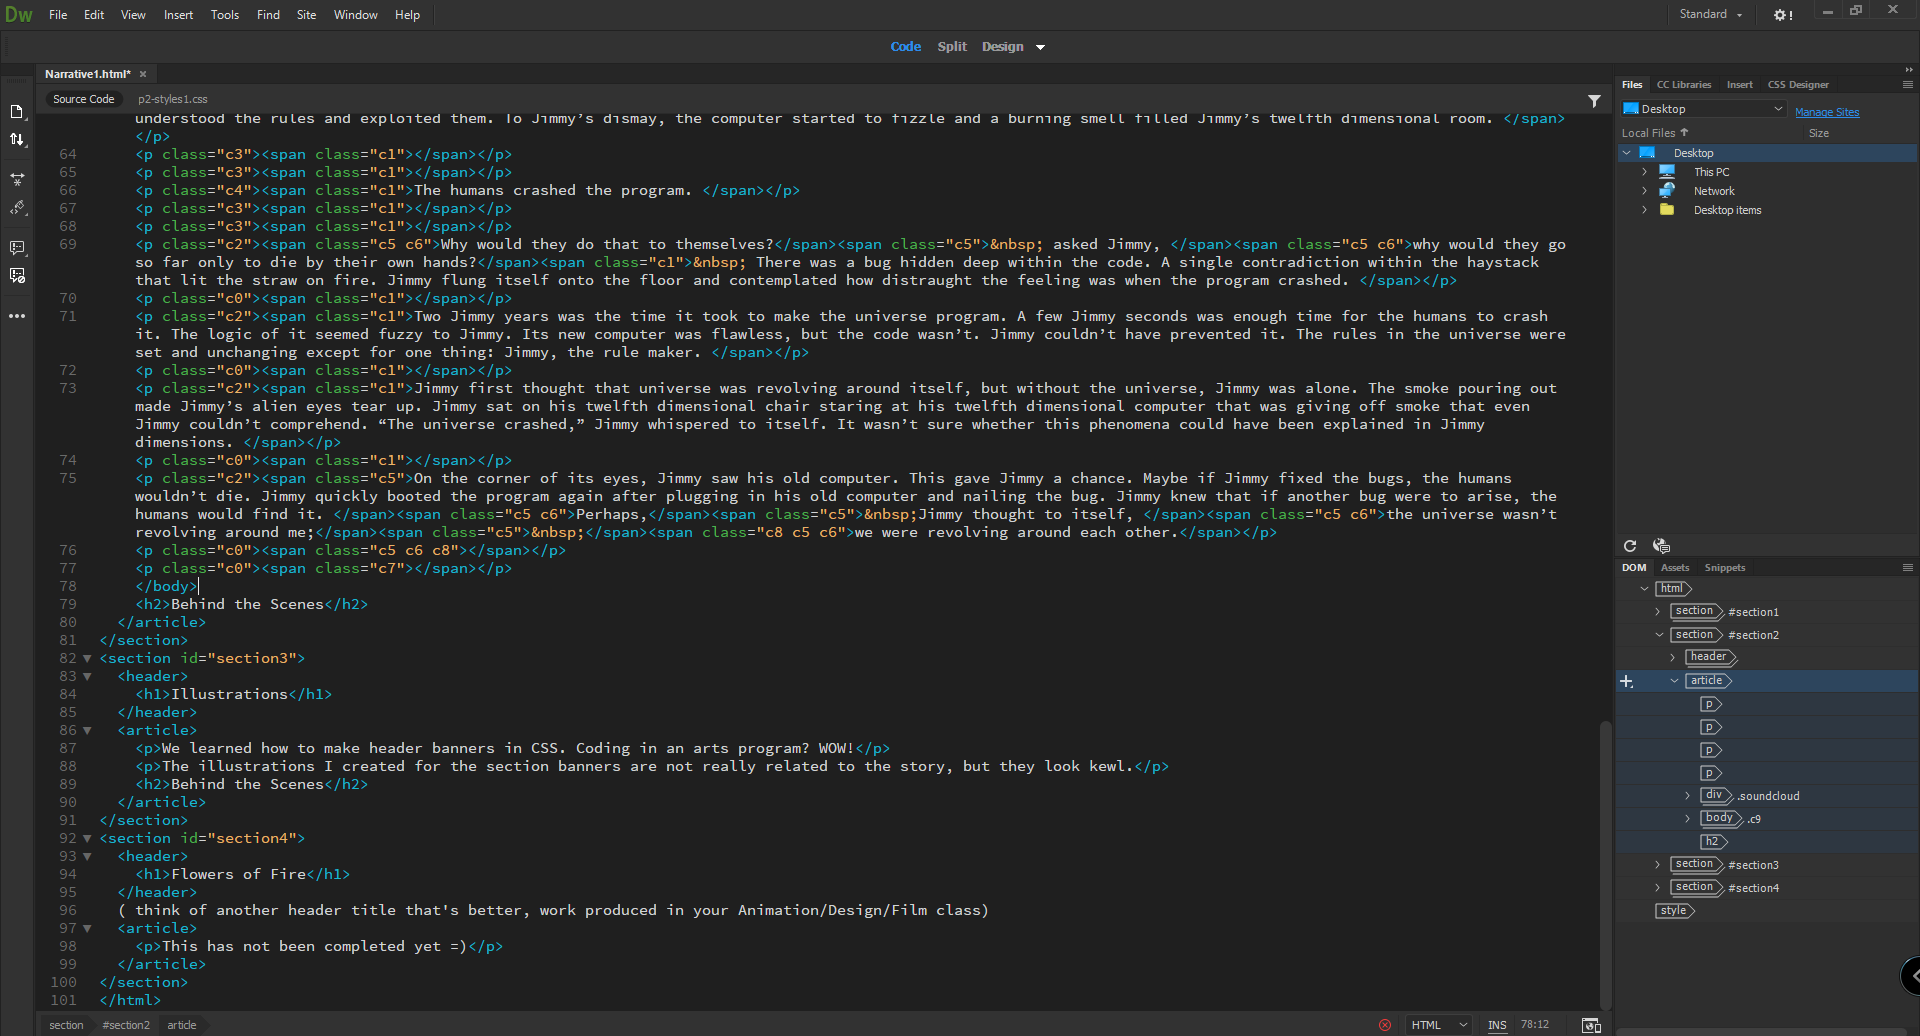 A graphical interface of Adobe Dreamweaver